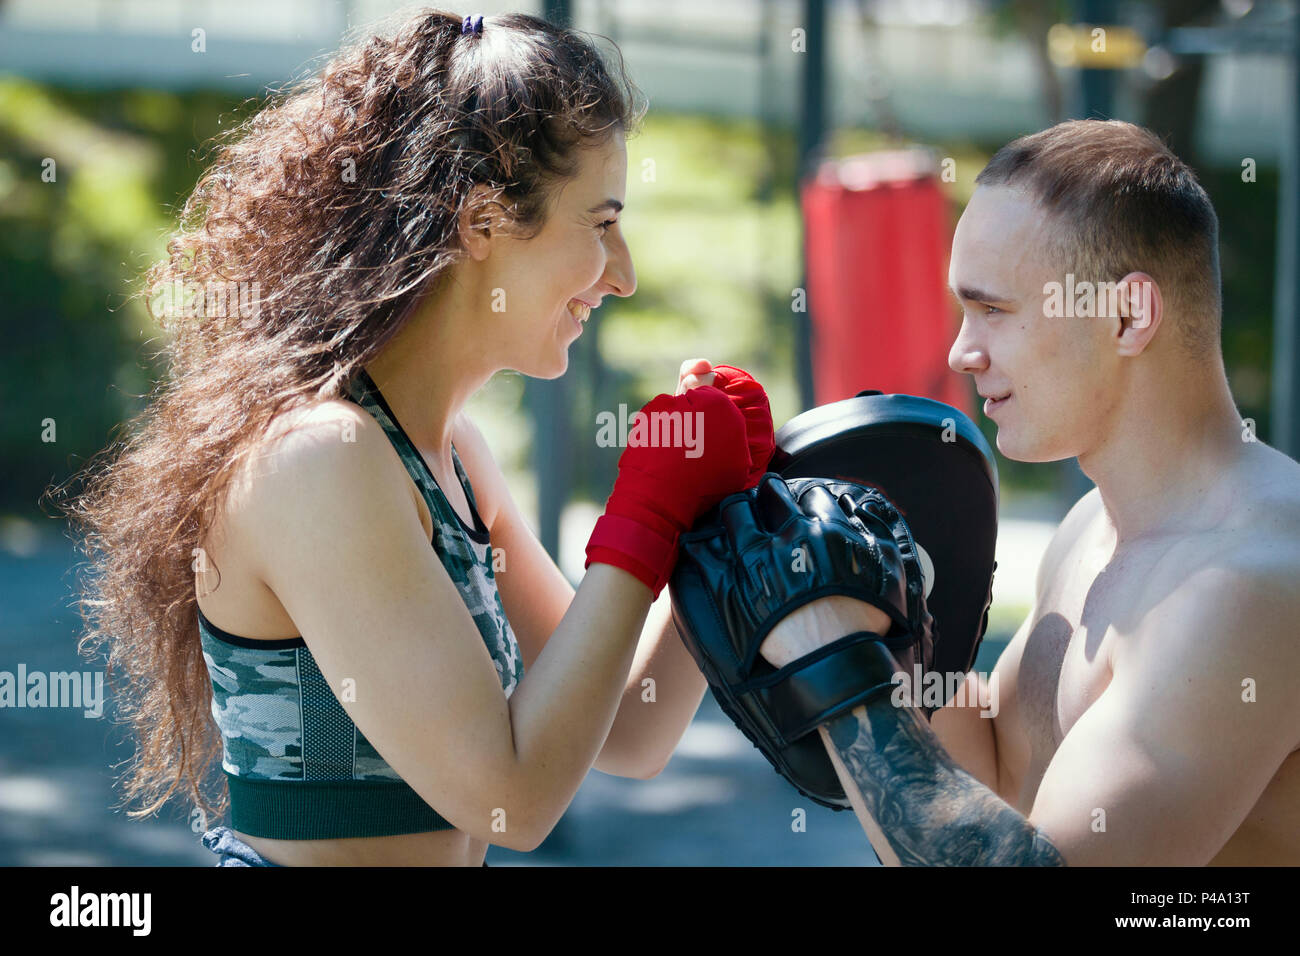 Portrait of young lovely couple looking into each other's eyes in boxing workout - Stock Image